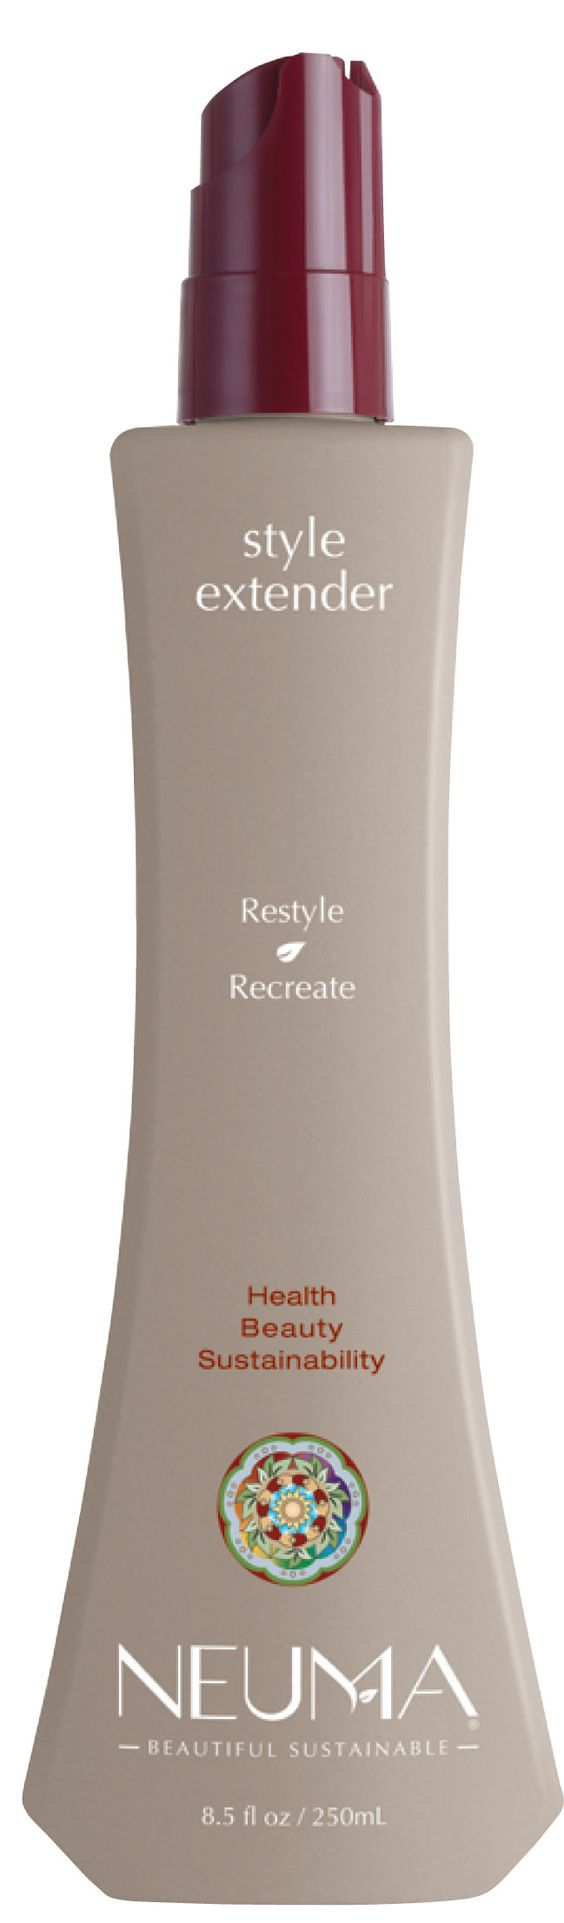 Lightweight refreshing spray saves valuable time by helping restyle with ease. Mist on dry hair to recreate favorite look using hot tools.  Hydrates while penetrating cuticle to strengthen and helps prevent damage to the hair.